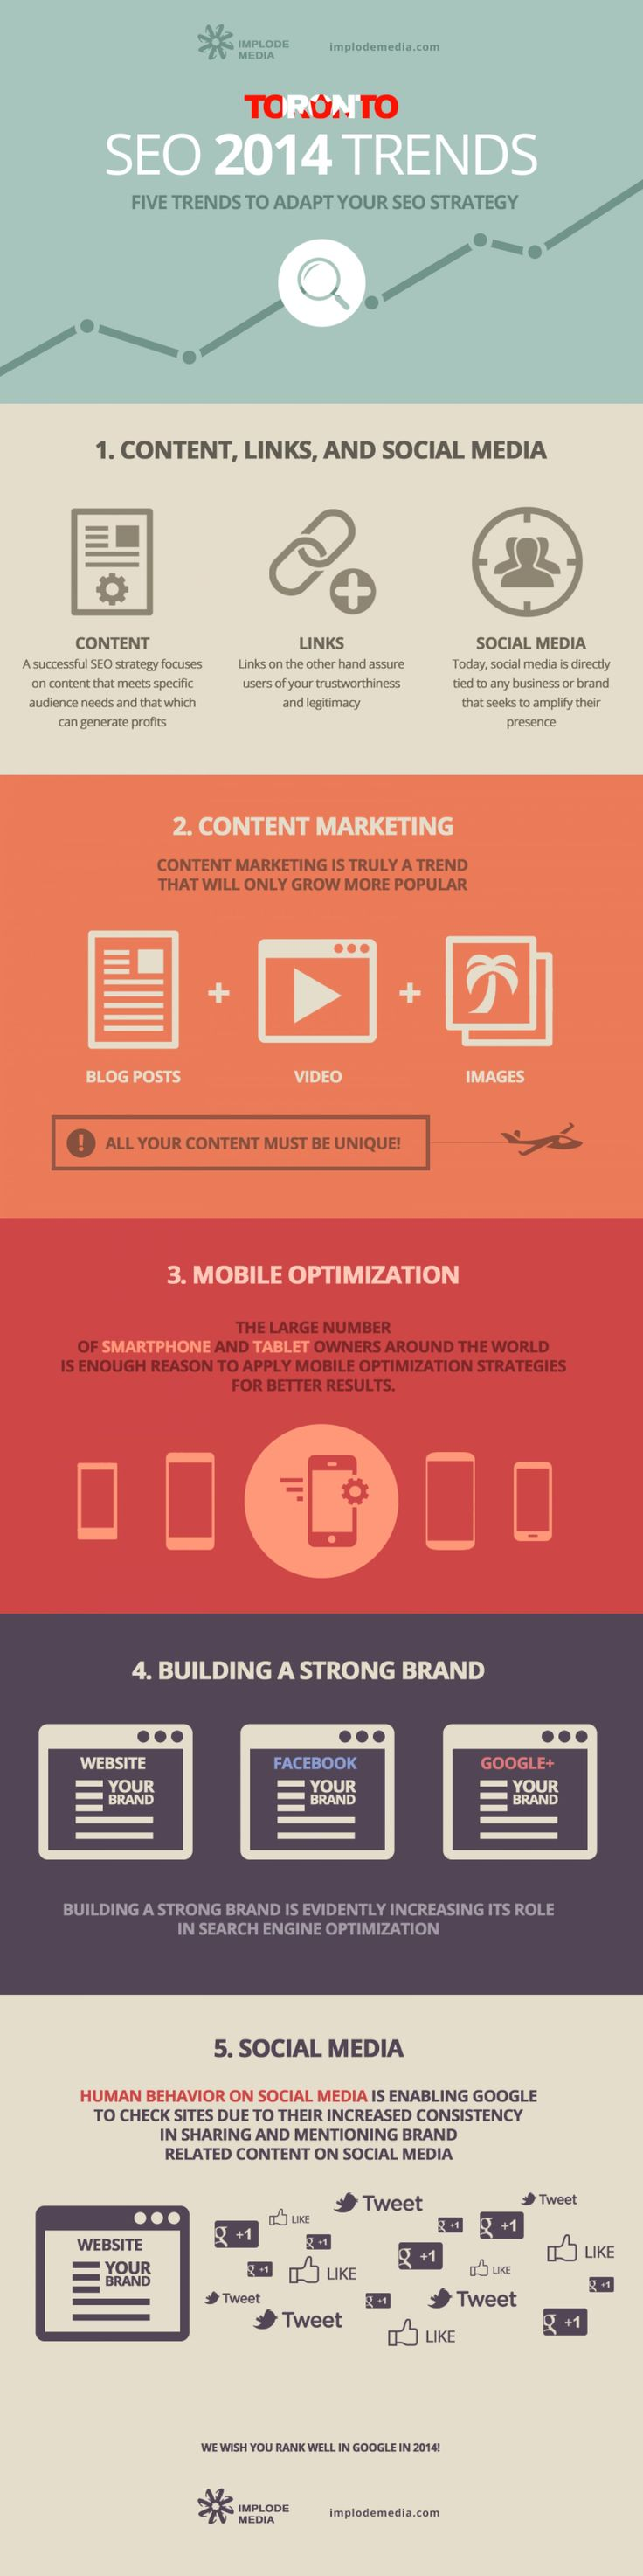 SEO 2014 Trends  | #Infographic repinned by @Piktochart | Create yours at www.piktochart.com